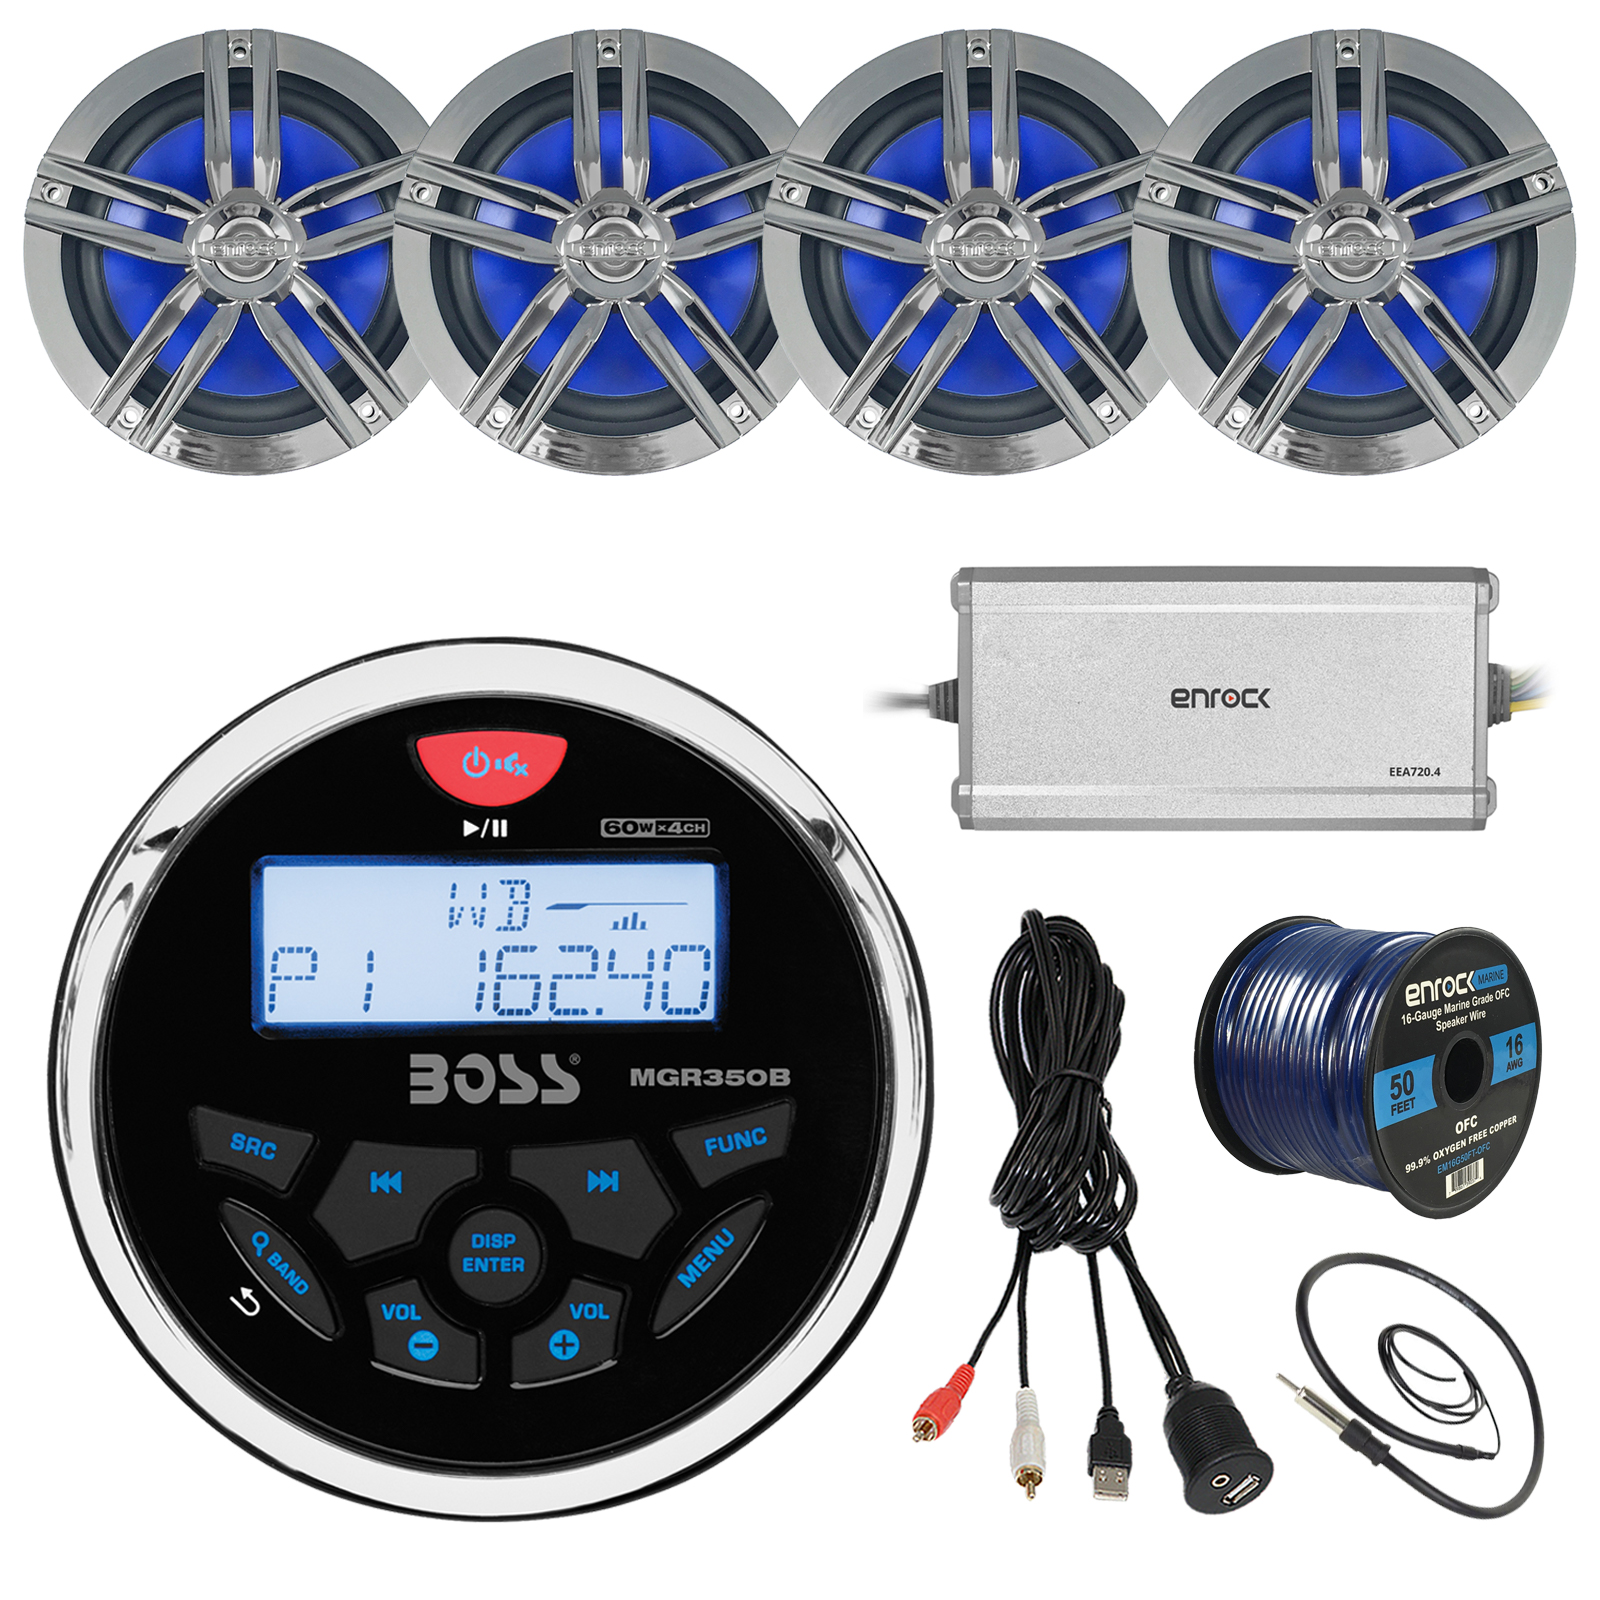 """21' - 29' Pontoon Boat Marine System: Boss Bluetooth Receiver, 4 x 6.5"""" Water-Resistant Speakers (Charcoal), 4-Channel Amplifier, 50Ft Speaker Wire, Radio Antenna - 22"""", USB Aux Interface Mount"""